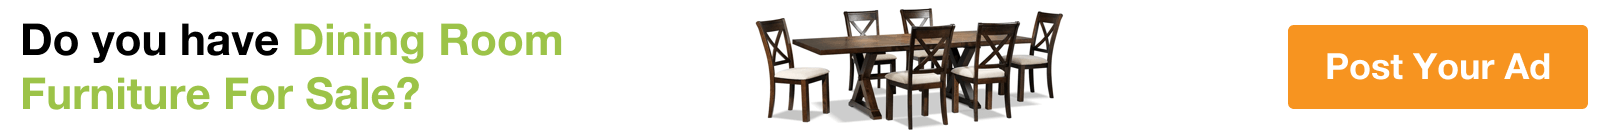 Dining Room Furniture for Sale in Saudi Arabia